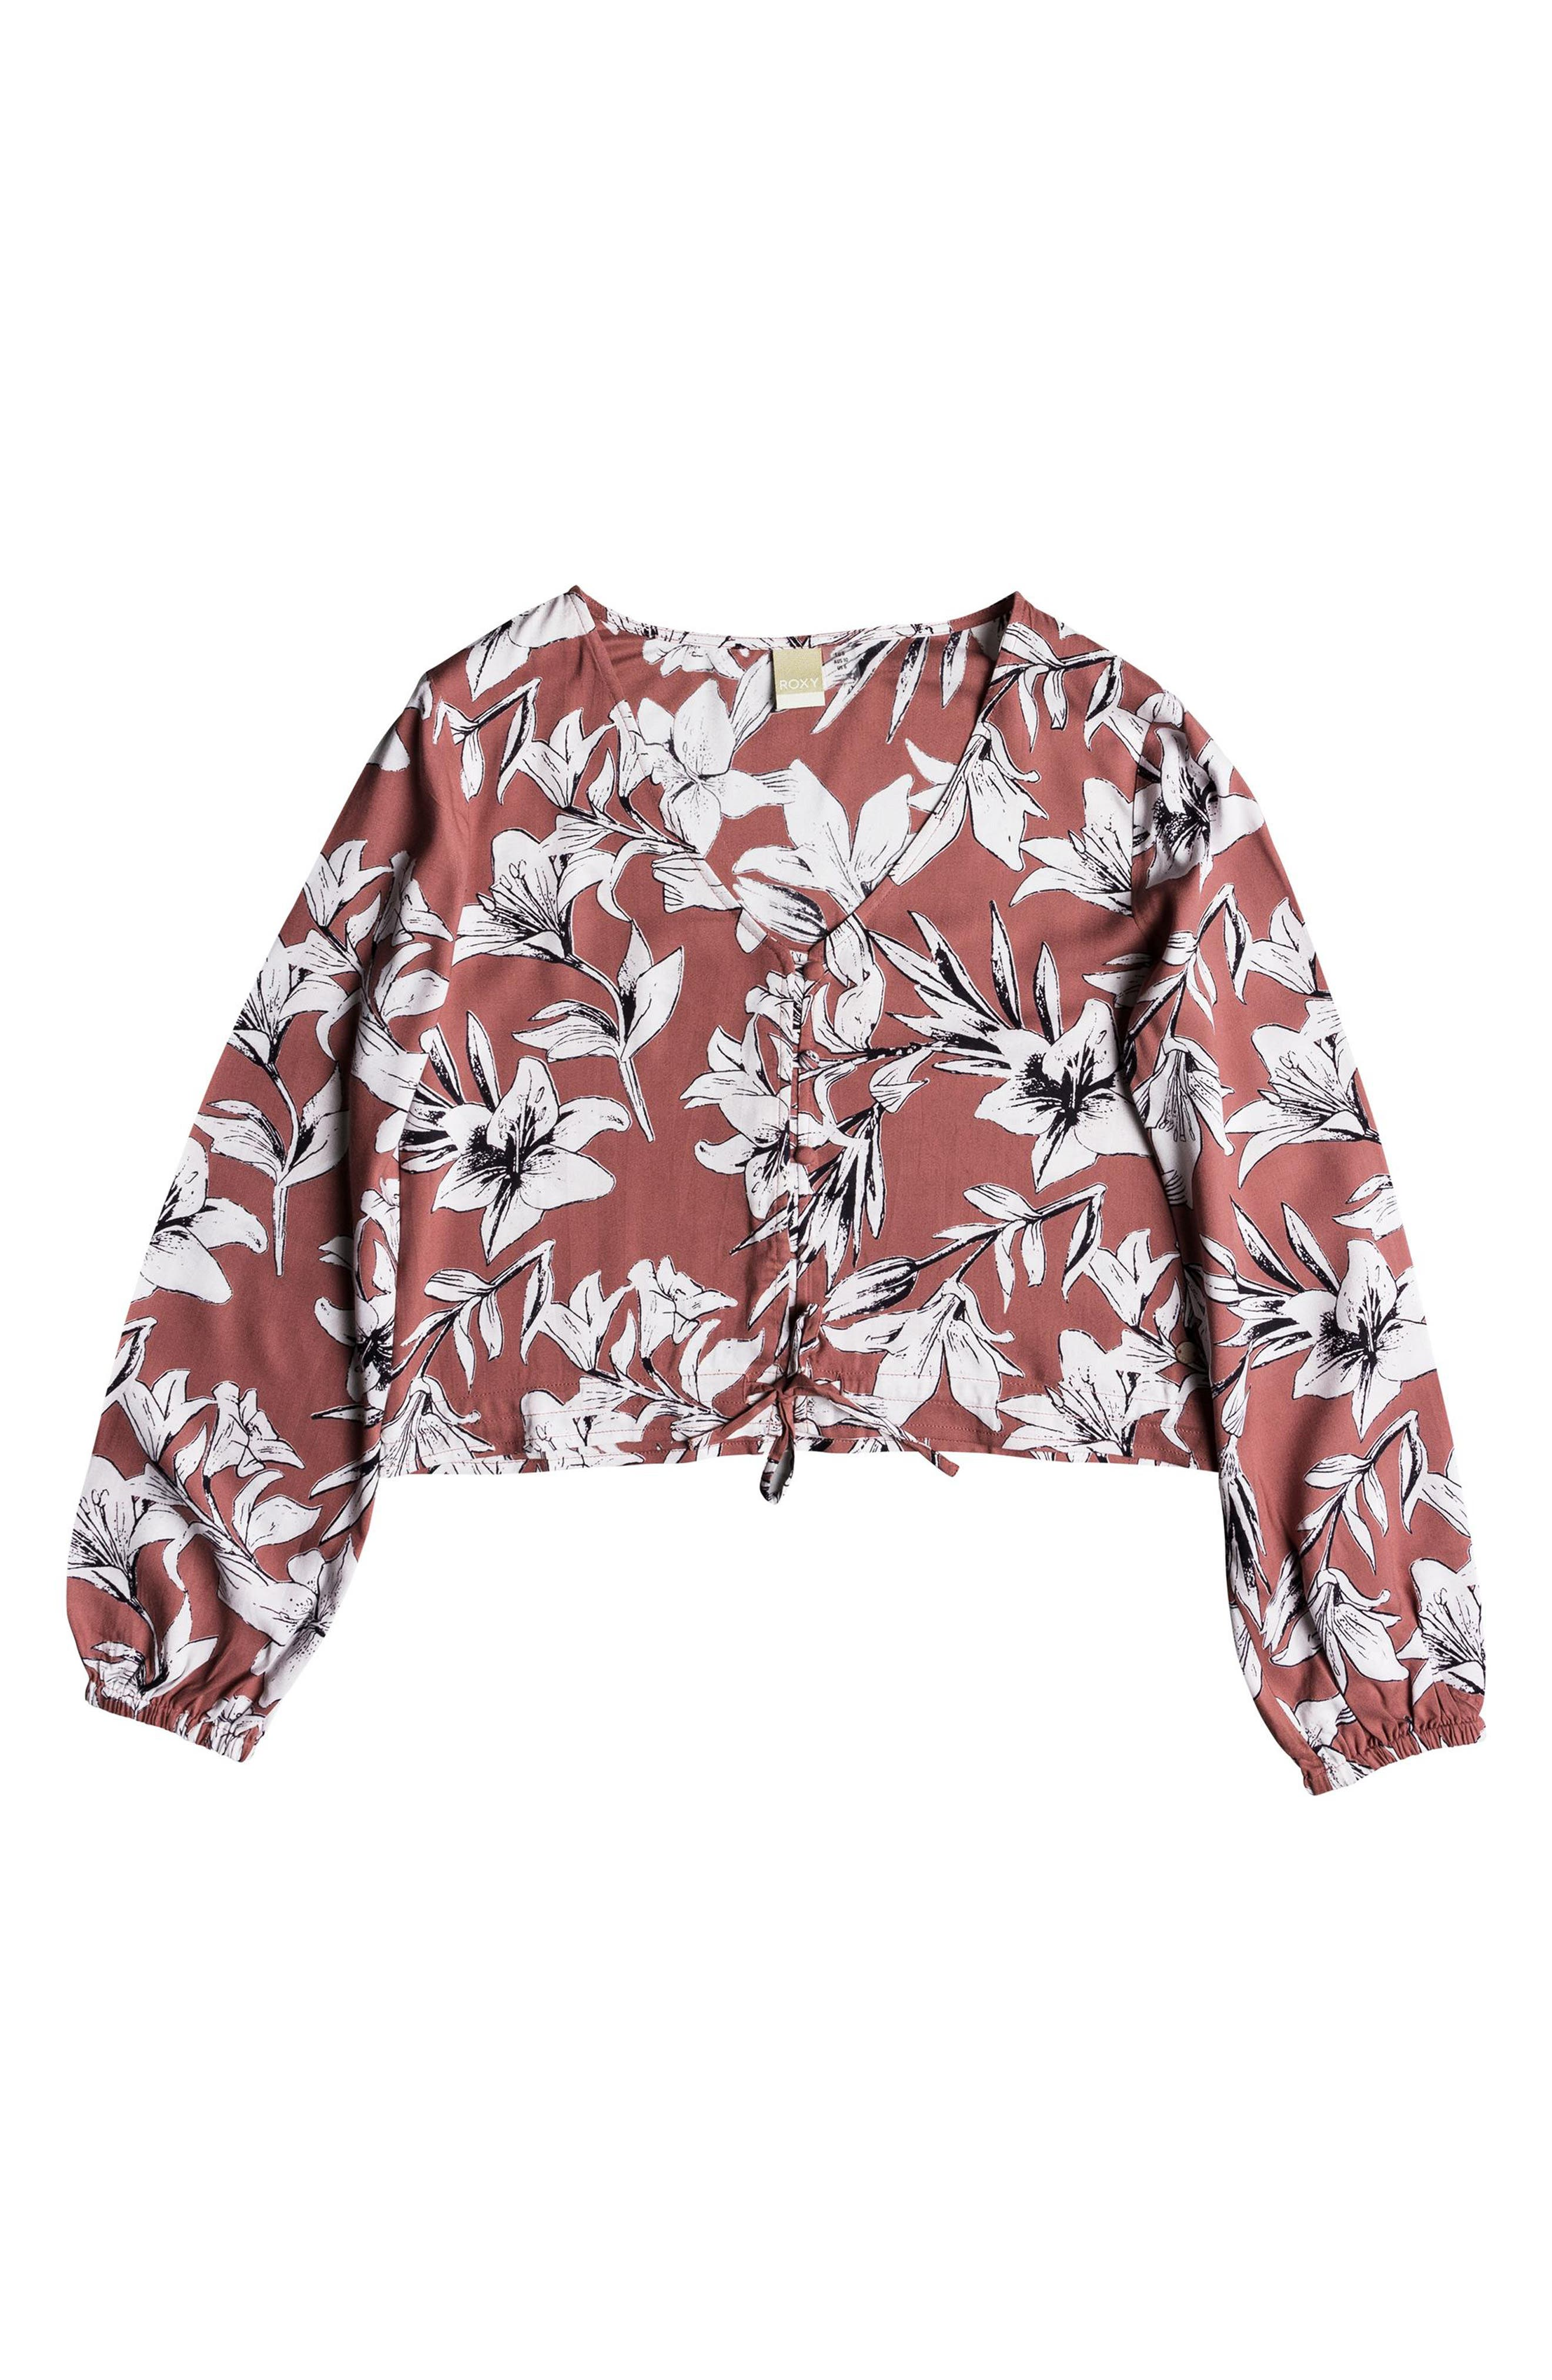 Morning Ritual Crop Blouse,                             Alternate thumbnail 4, color,                             Withered Rose Lily House